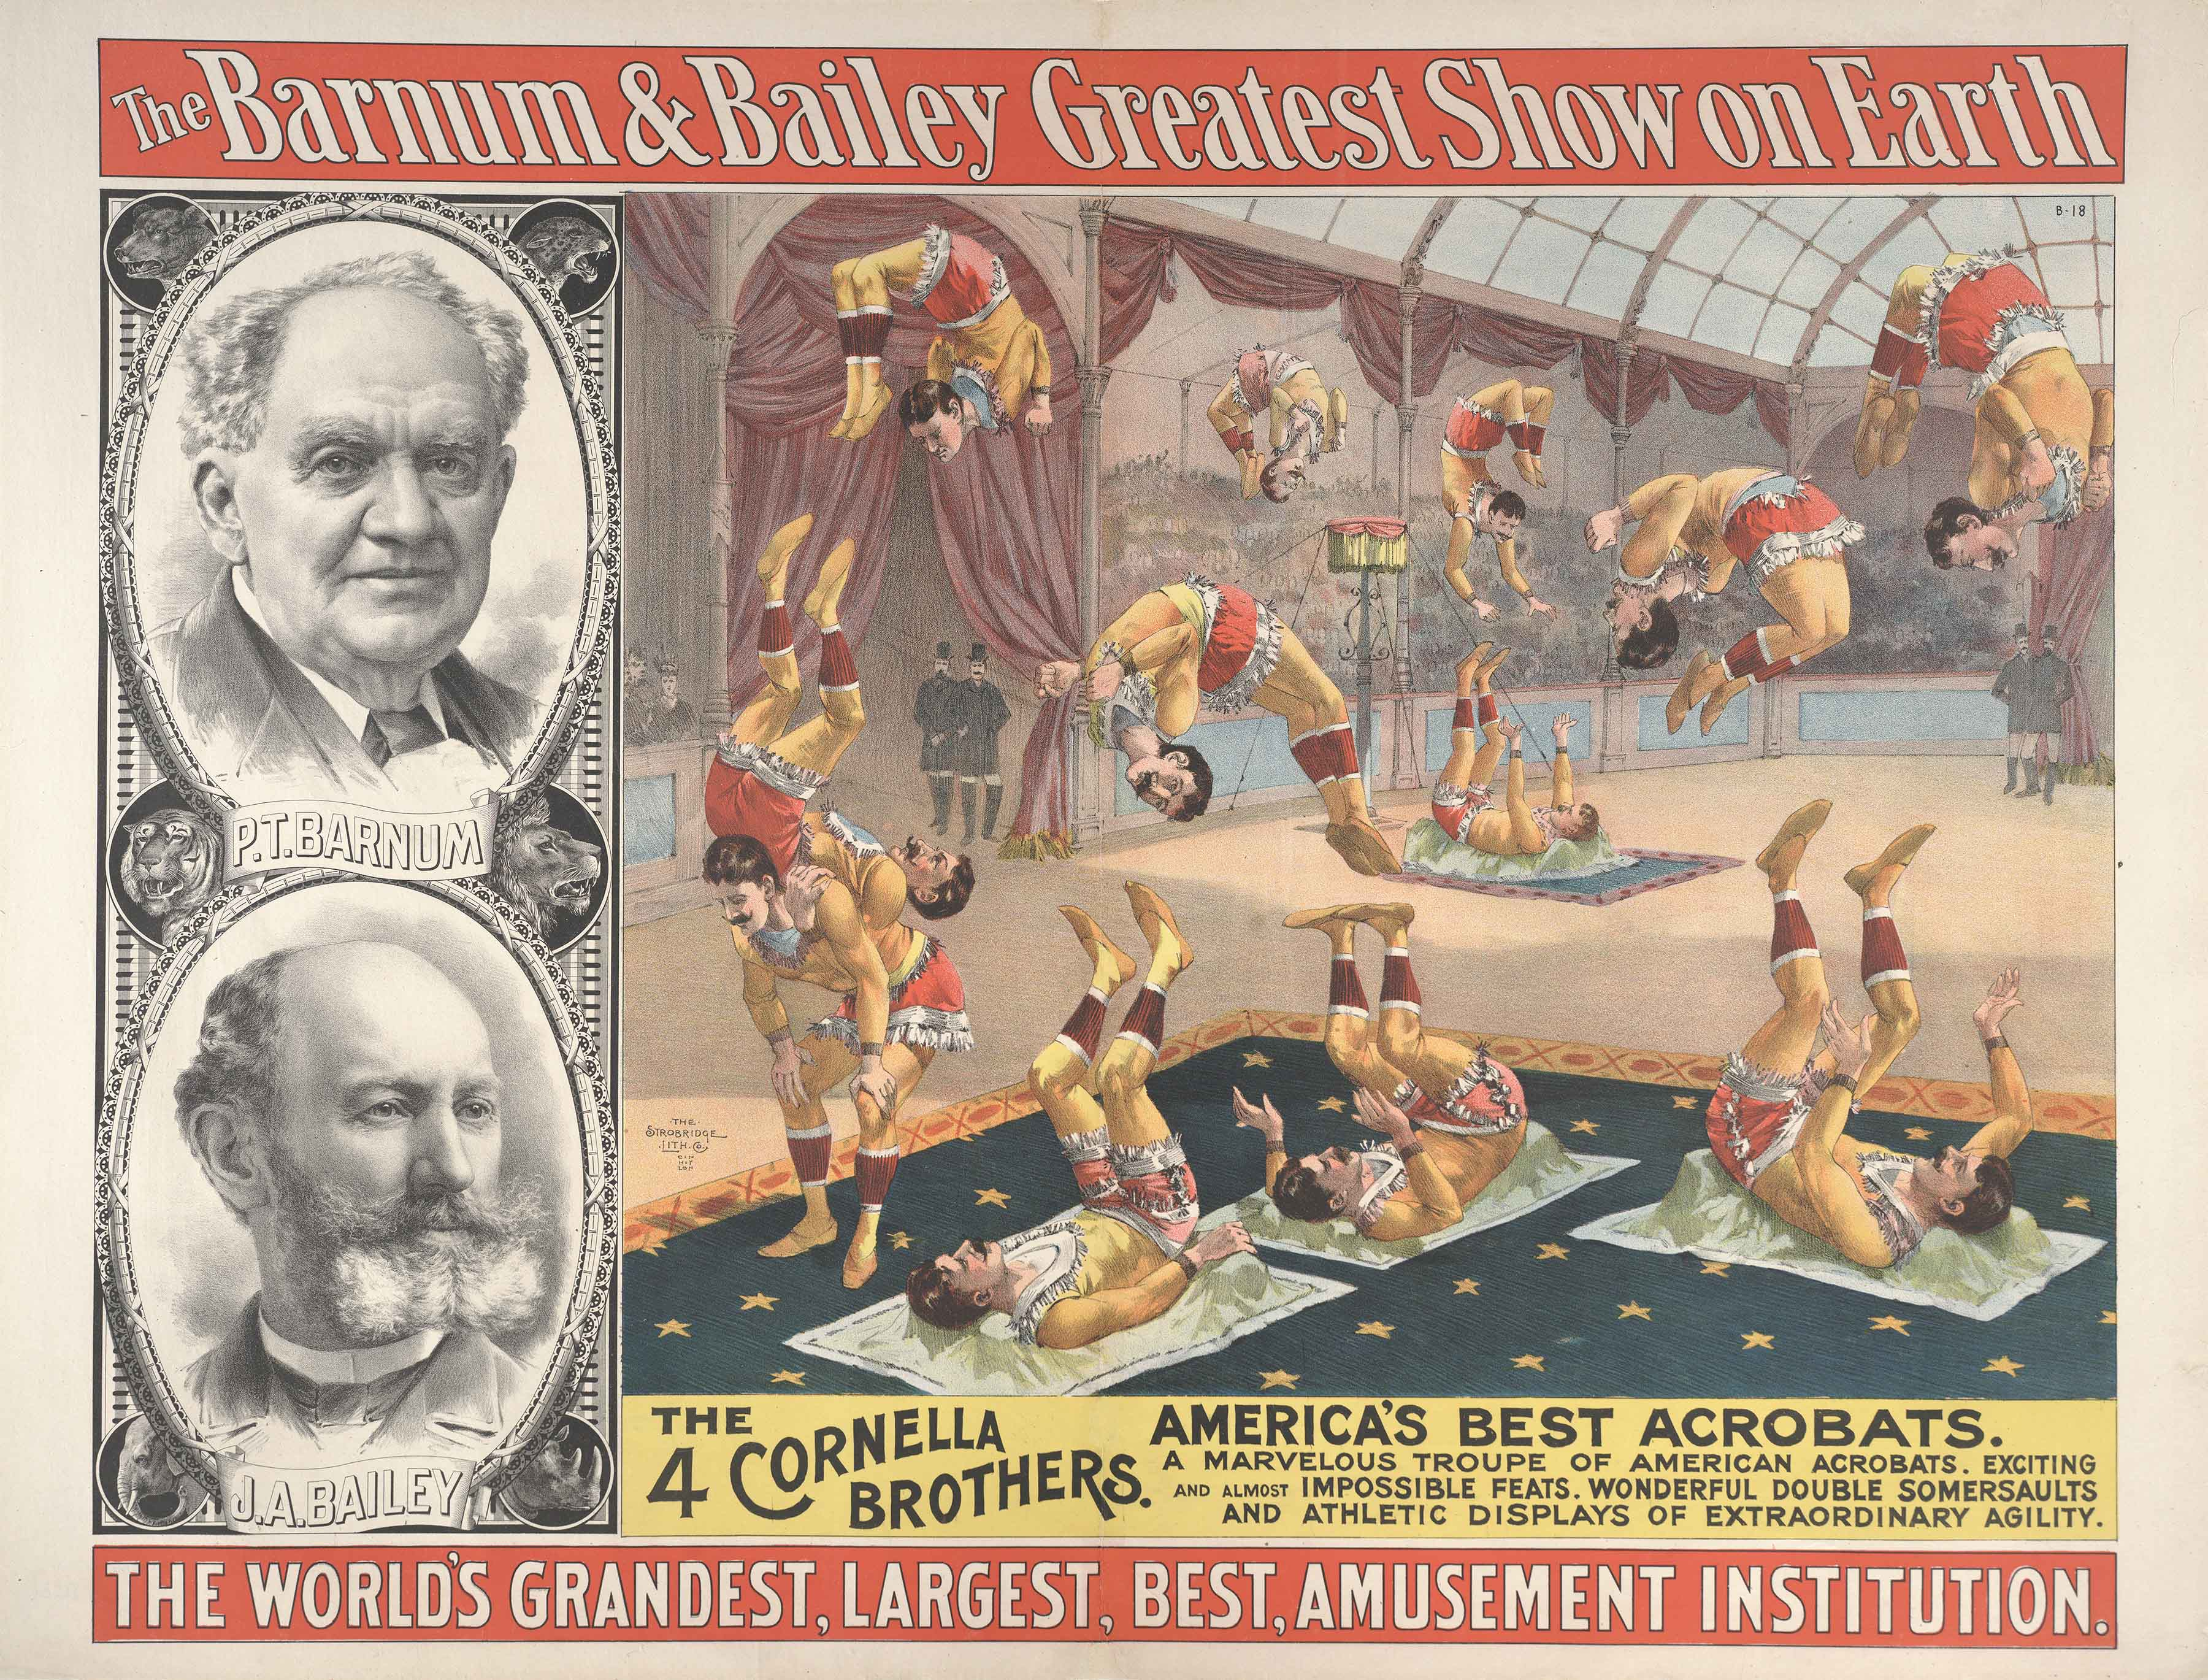 Barnum and Bailey poster featuring images of the two founders, as well as many tumblers flying through the air